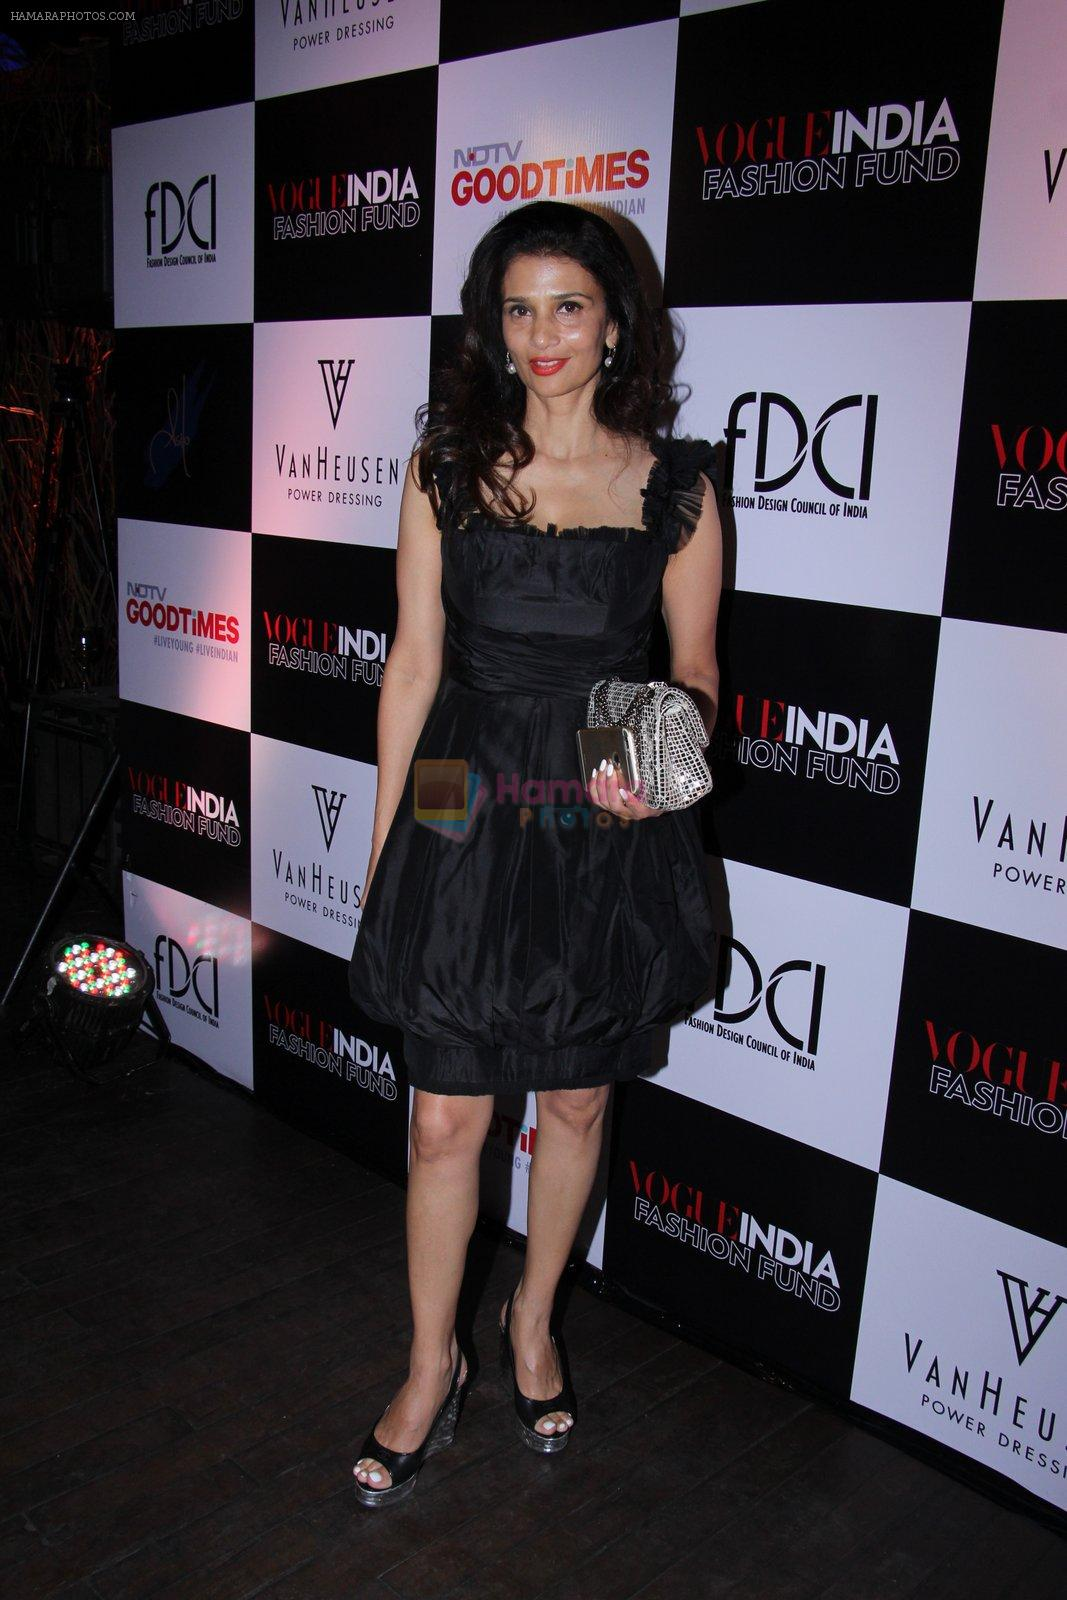 Rhea Pillai at Vogue India Fashion Fund Event on 29th Nov 2016